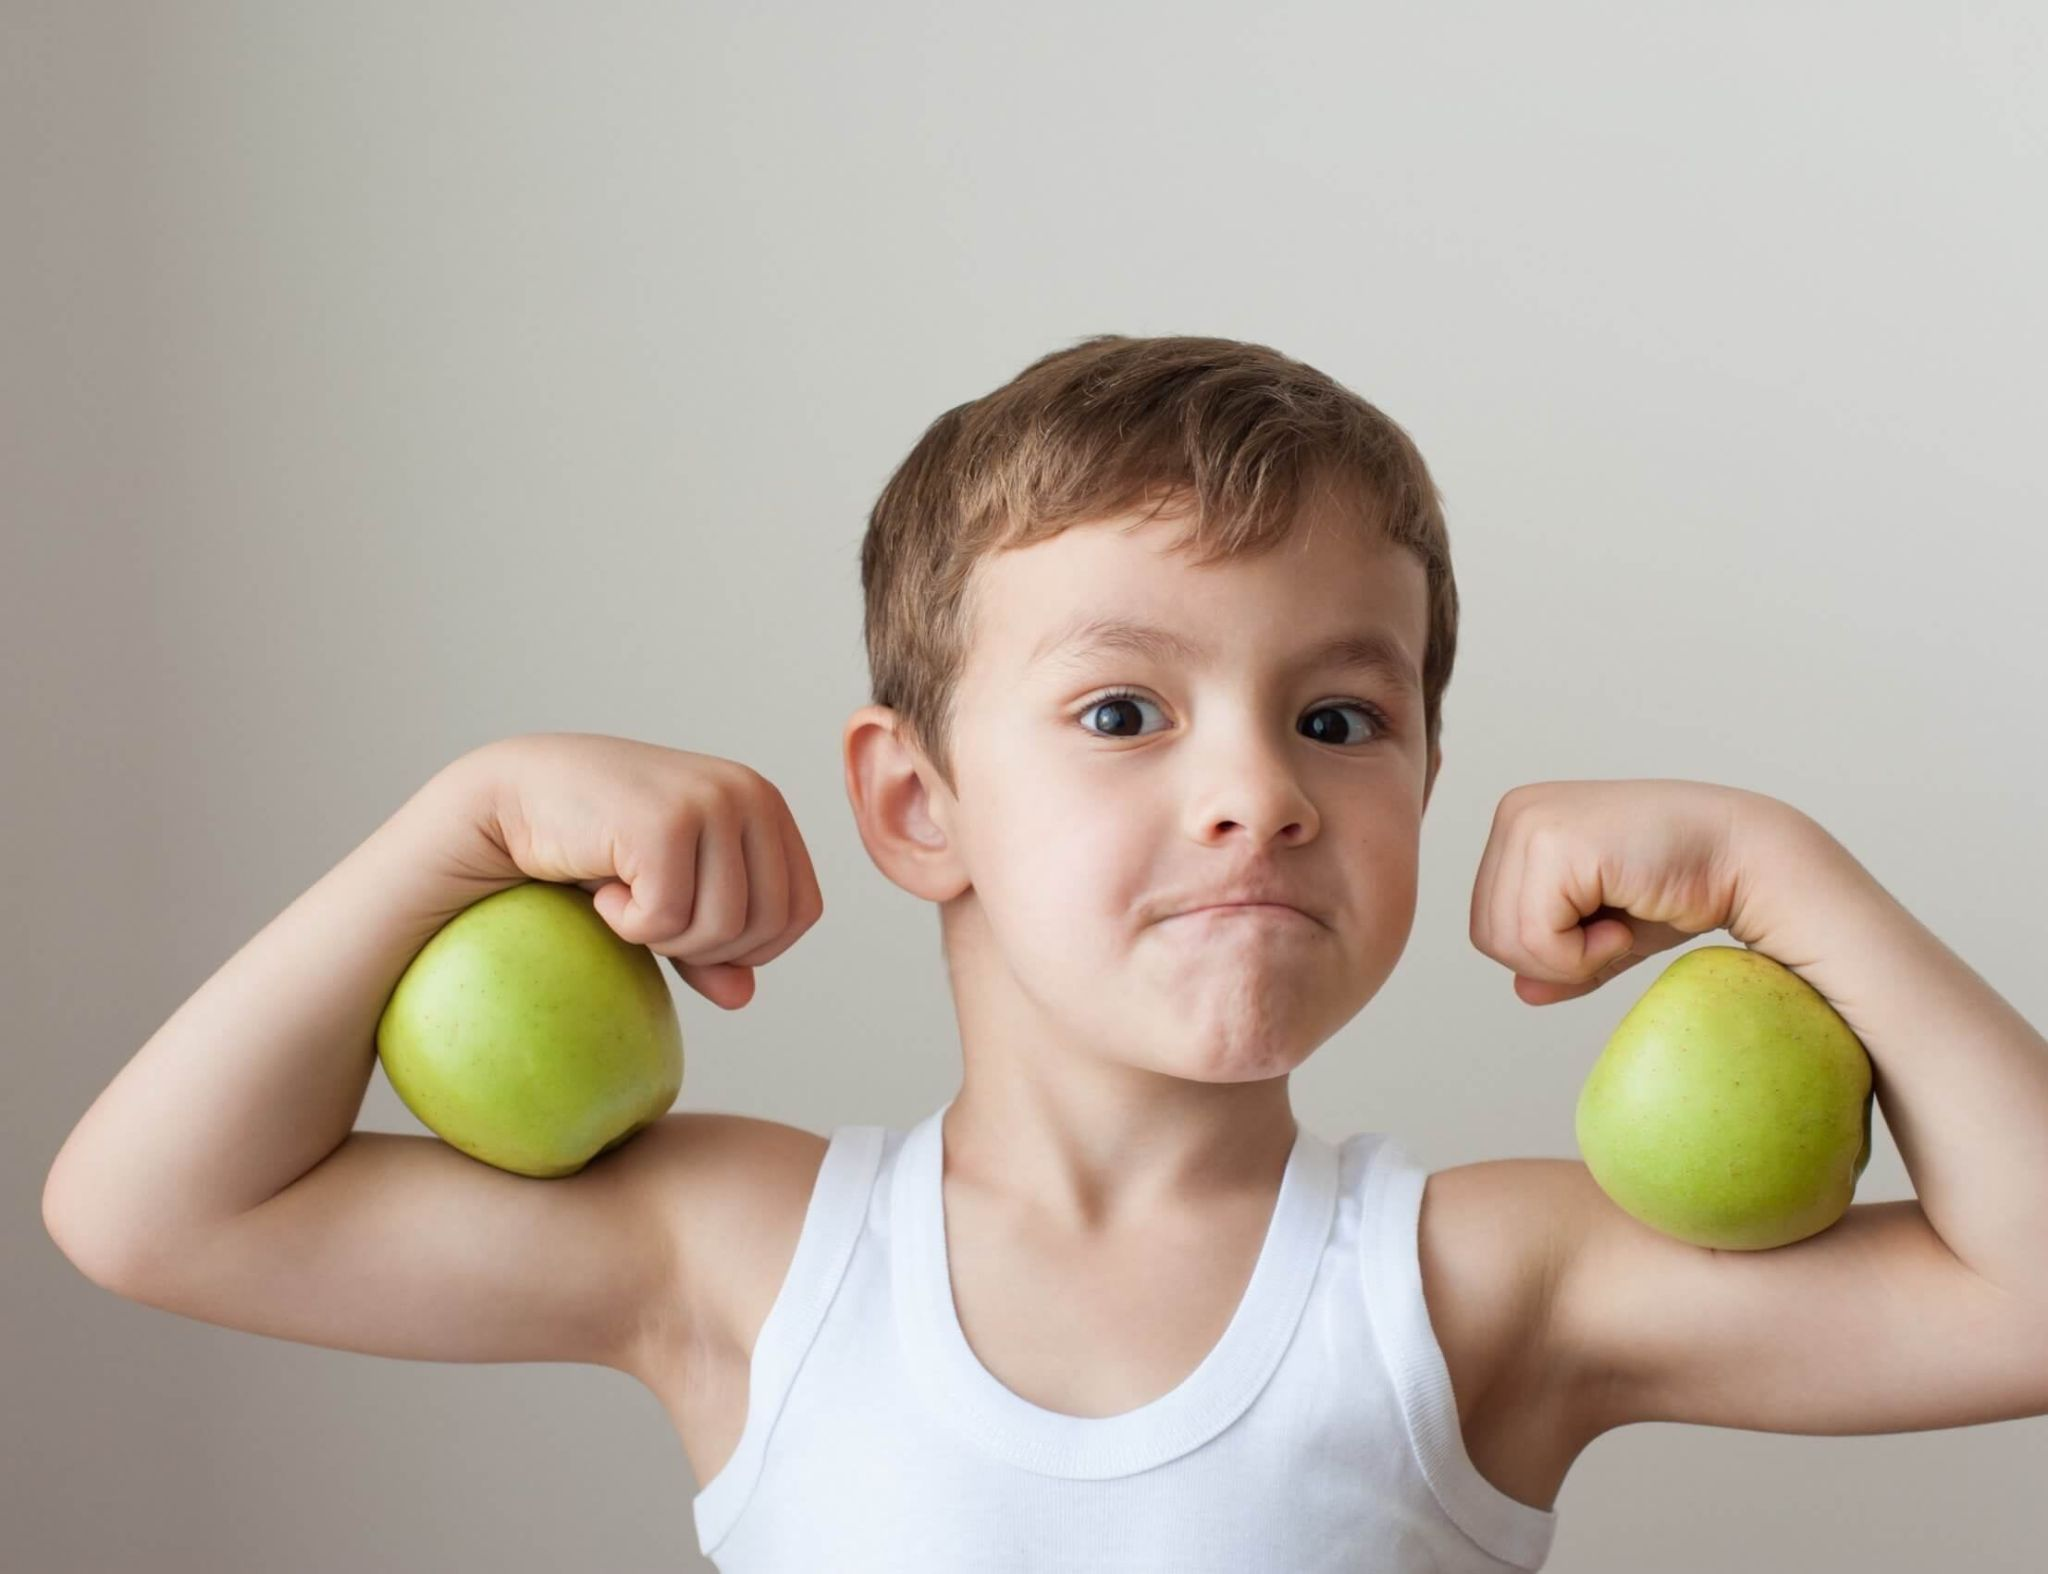 some meals that can help children's immunity